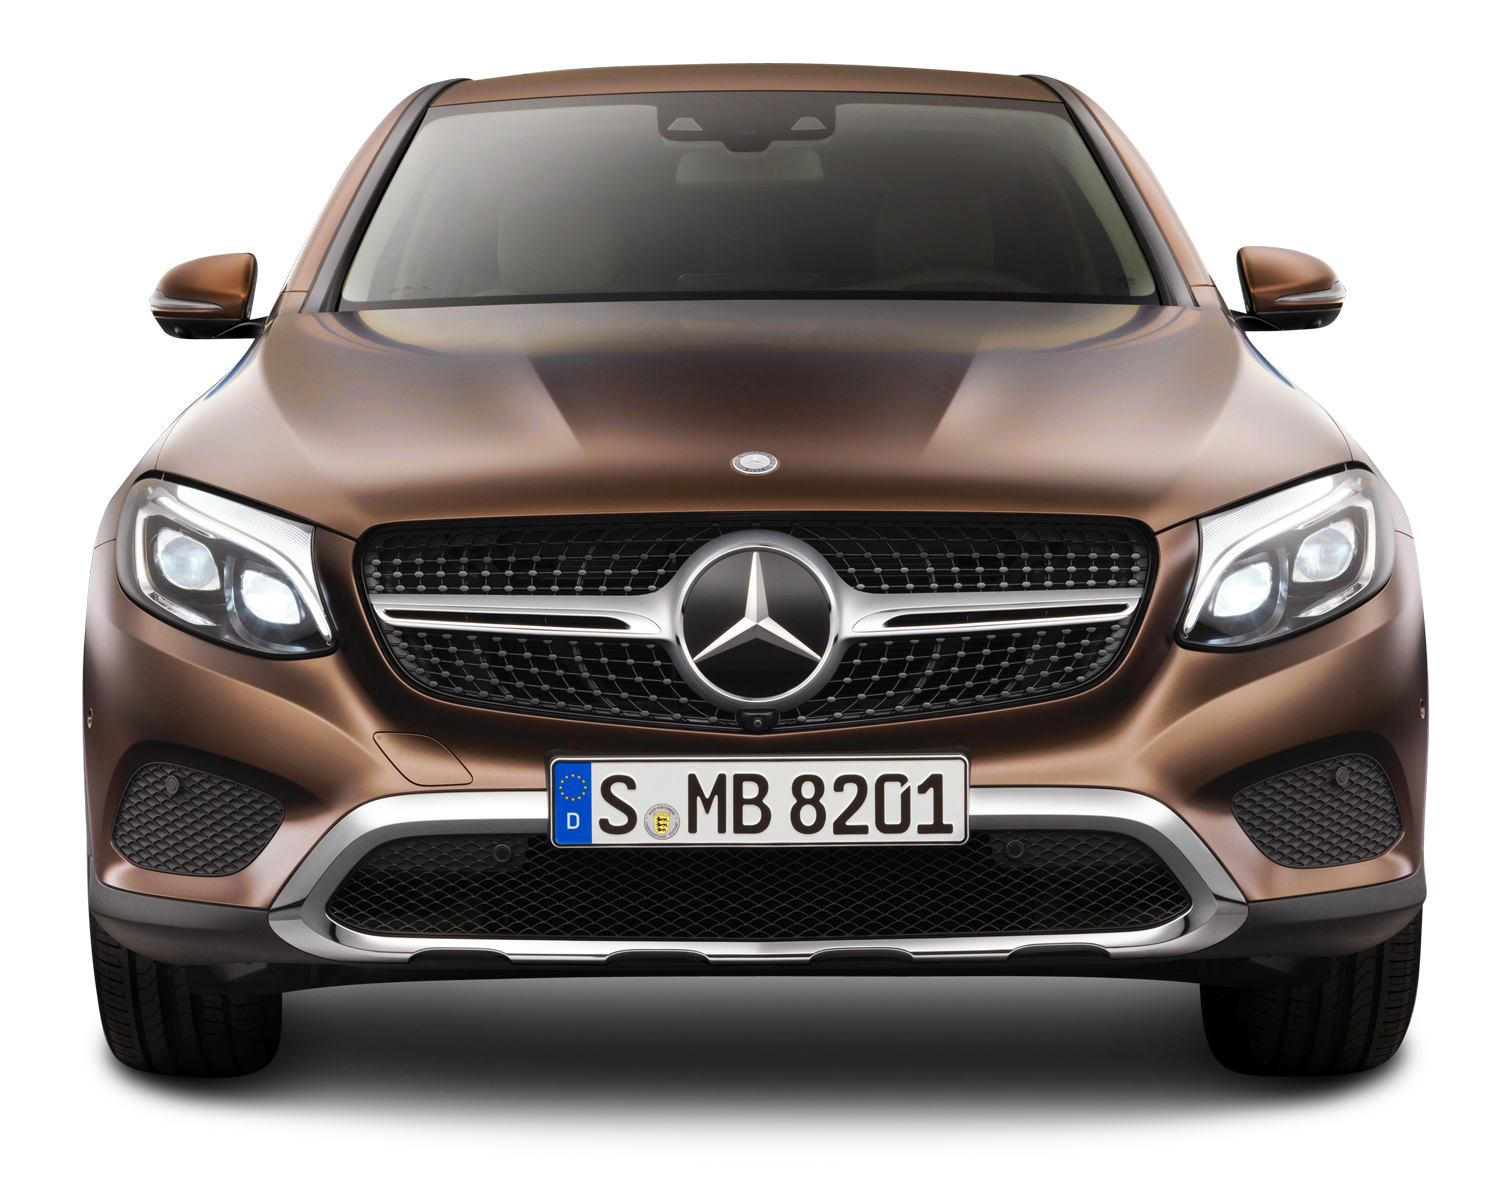 Front Of Car Png - Brown Mercedes Benz GLE Coupe Front View Car PNG Image - PngPix